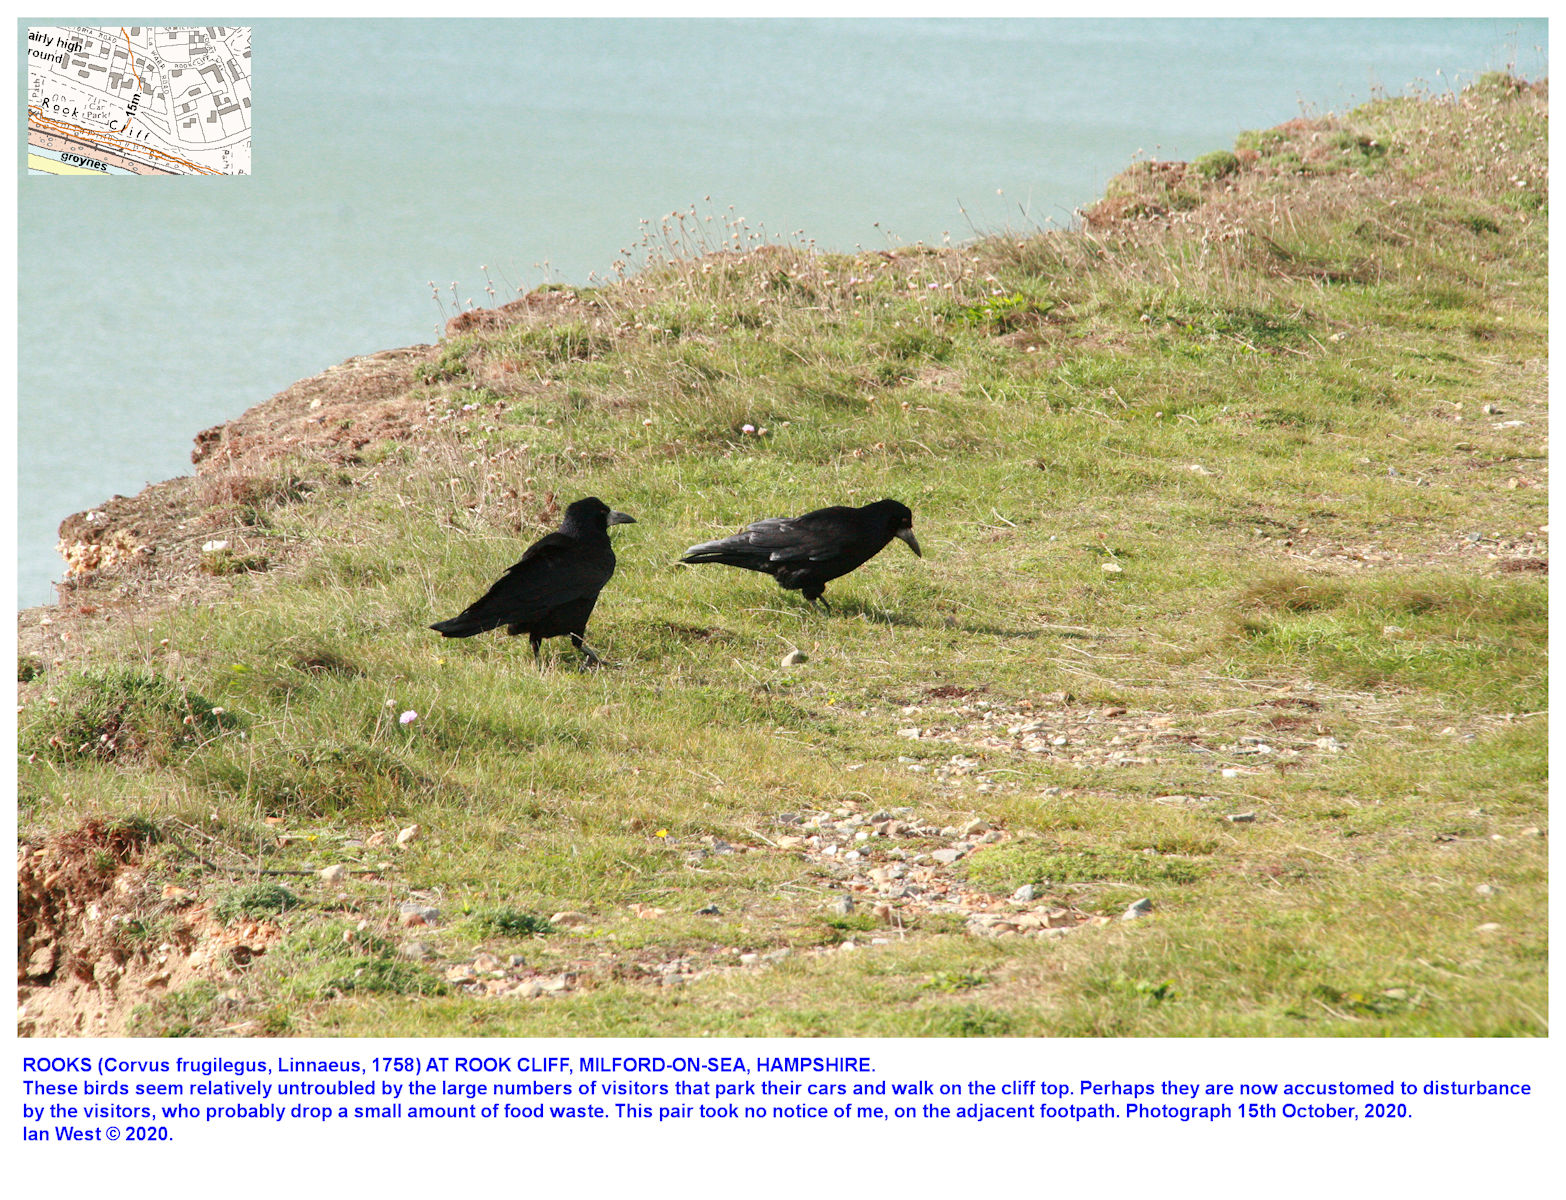 Rooks on the cliff top at Rook Cliff,  Milford-on-Sea, 15th October 2020